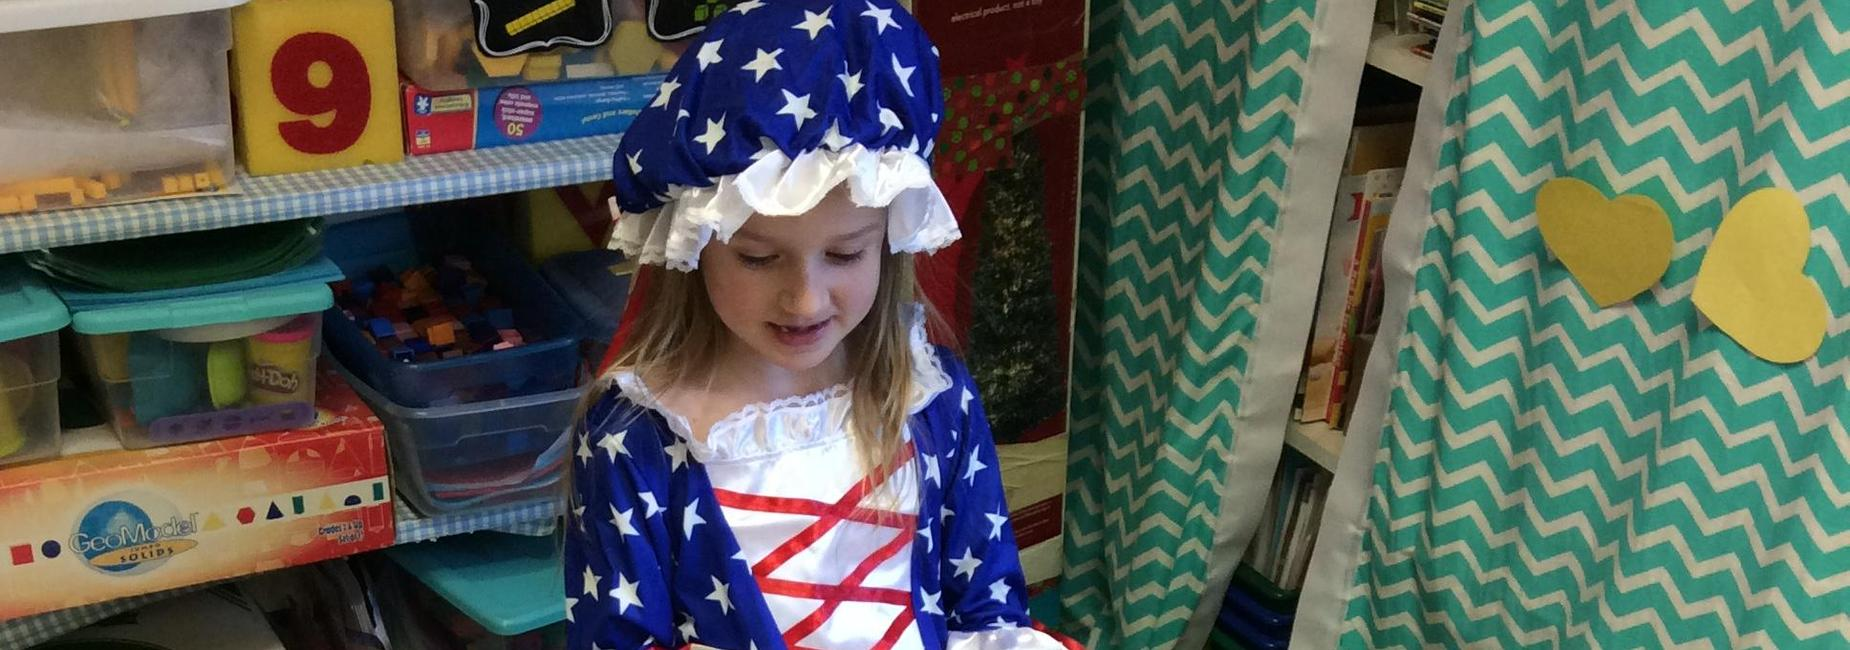 Student dressed as Betsy Ross